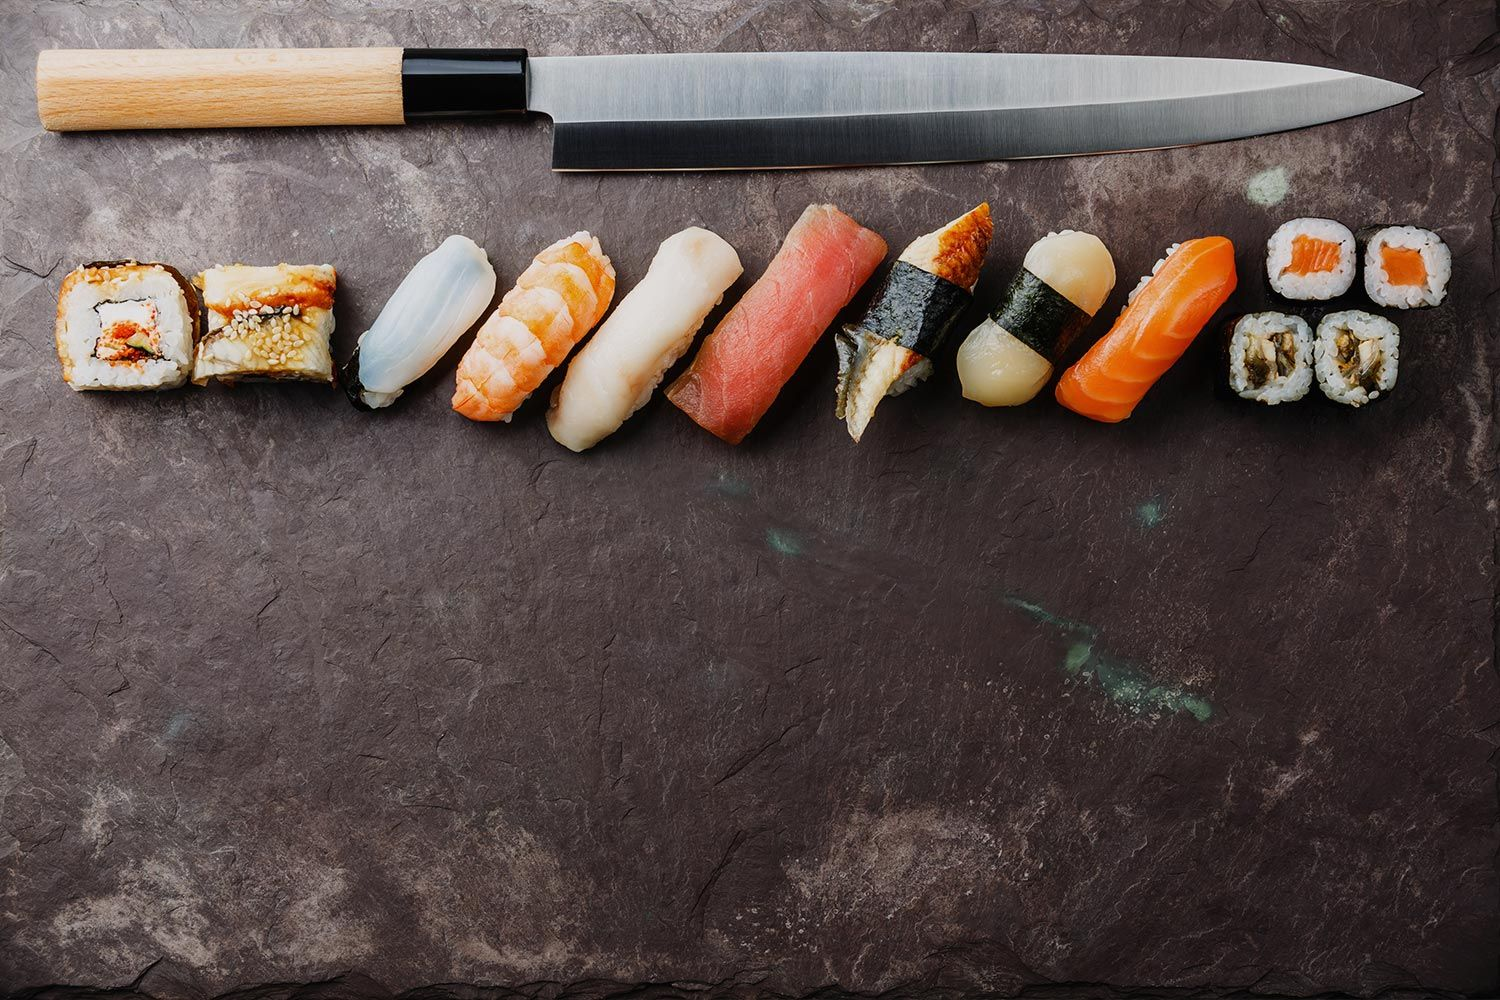 Why are Japanese knives the best in the world? You can discover why in our brand new article!